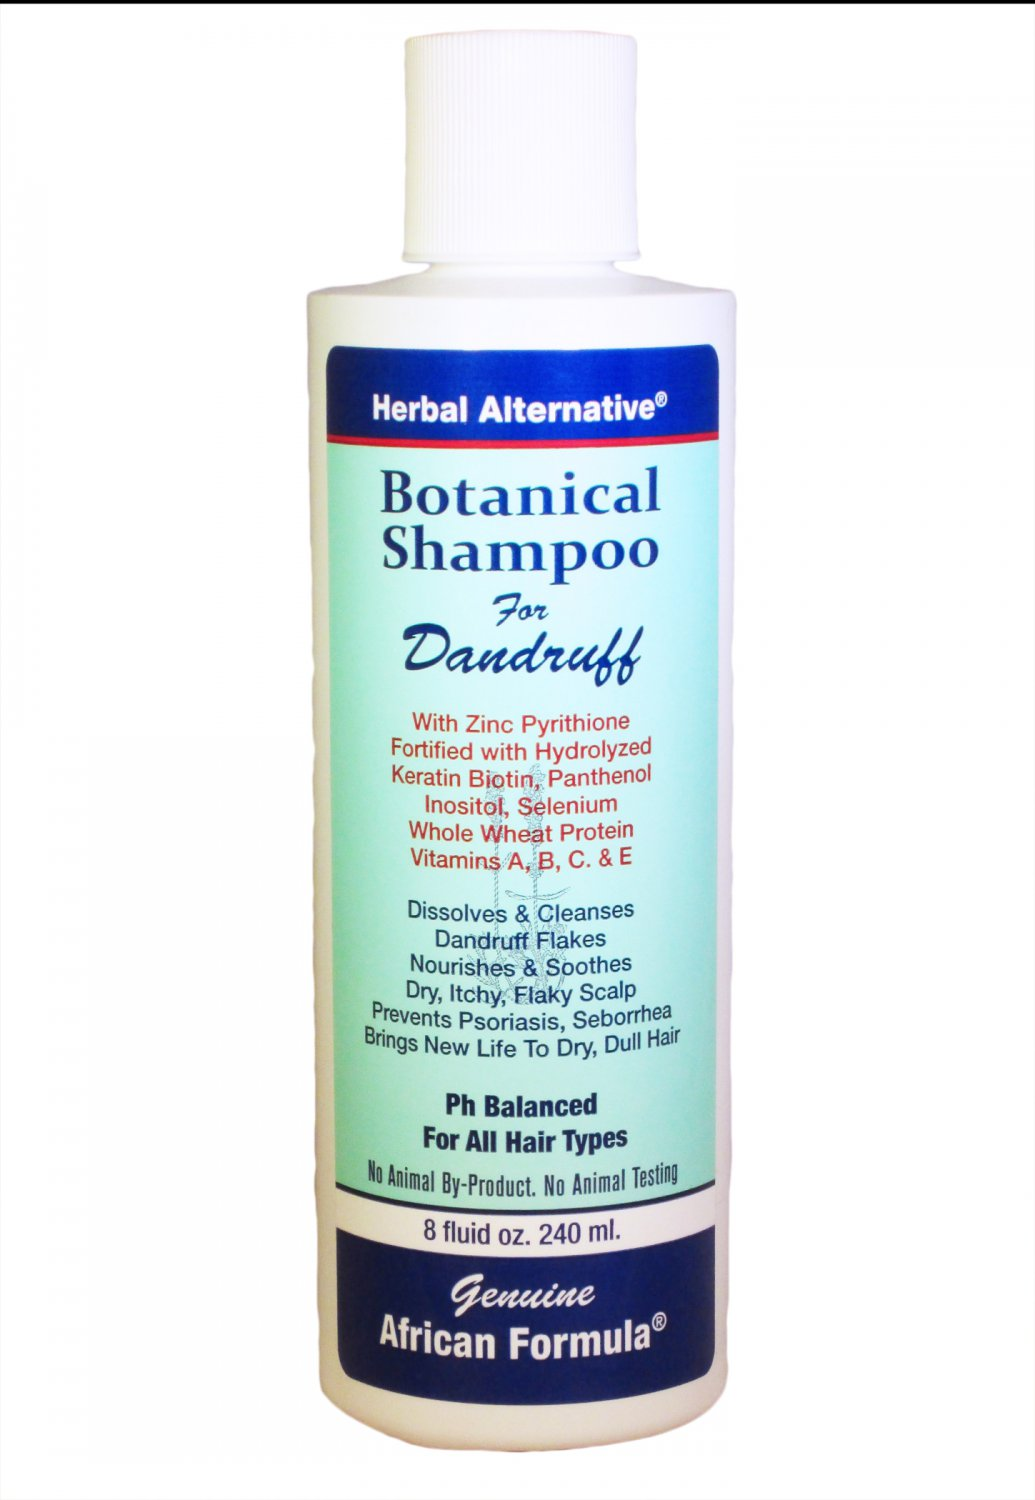 Botanical Shampoo for Dandruff